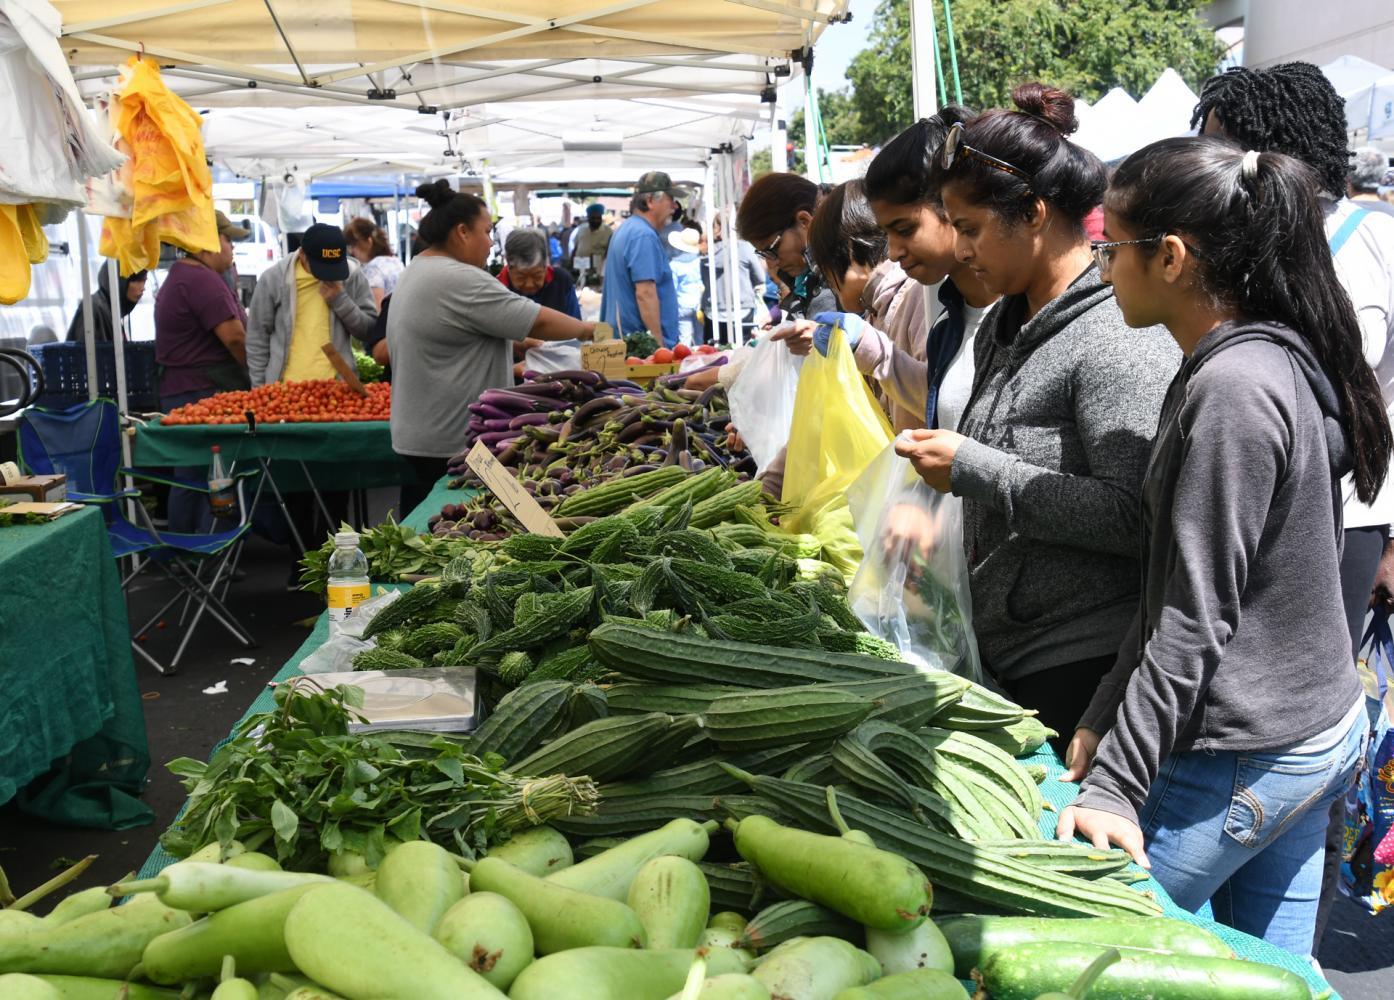 Shoppers sift through fruits and vegetables at the farmers market in downtown Hayward on Saturday near City Hall. The market has been an institution in the city for more than 20 years and is open year round, every Saturday from 9 a.m. to 1 p.m, rain or shine. The market features more than 35 farmers, food purveyors, and artisans selling locally grown organic produce, seafood, pastured eggs, cheese, nuts, honey breads, baked goods, plants, fresh-cut flowers, pre-packed cold and hot foods, artisanal crafts and jewelry.